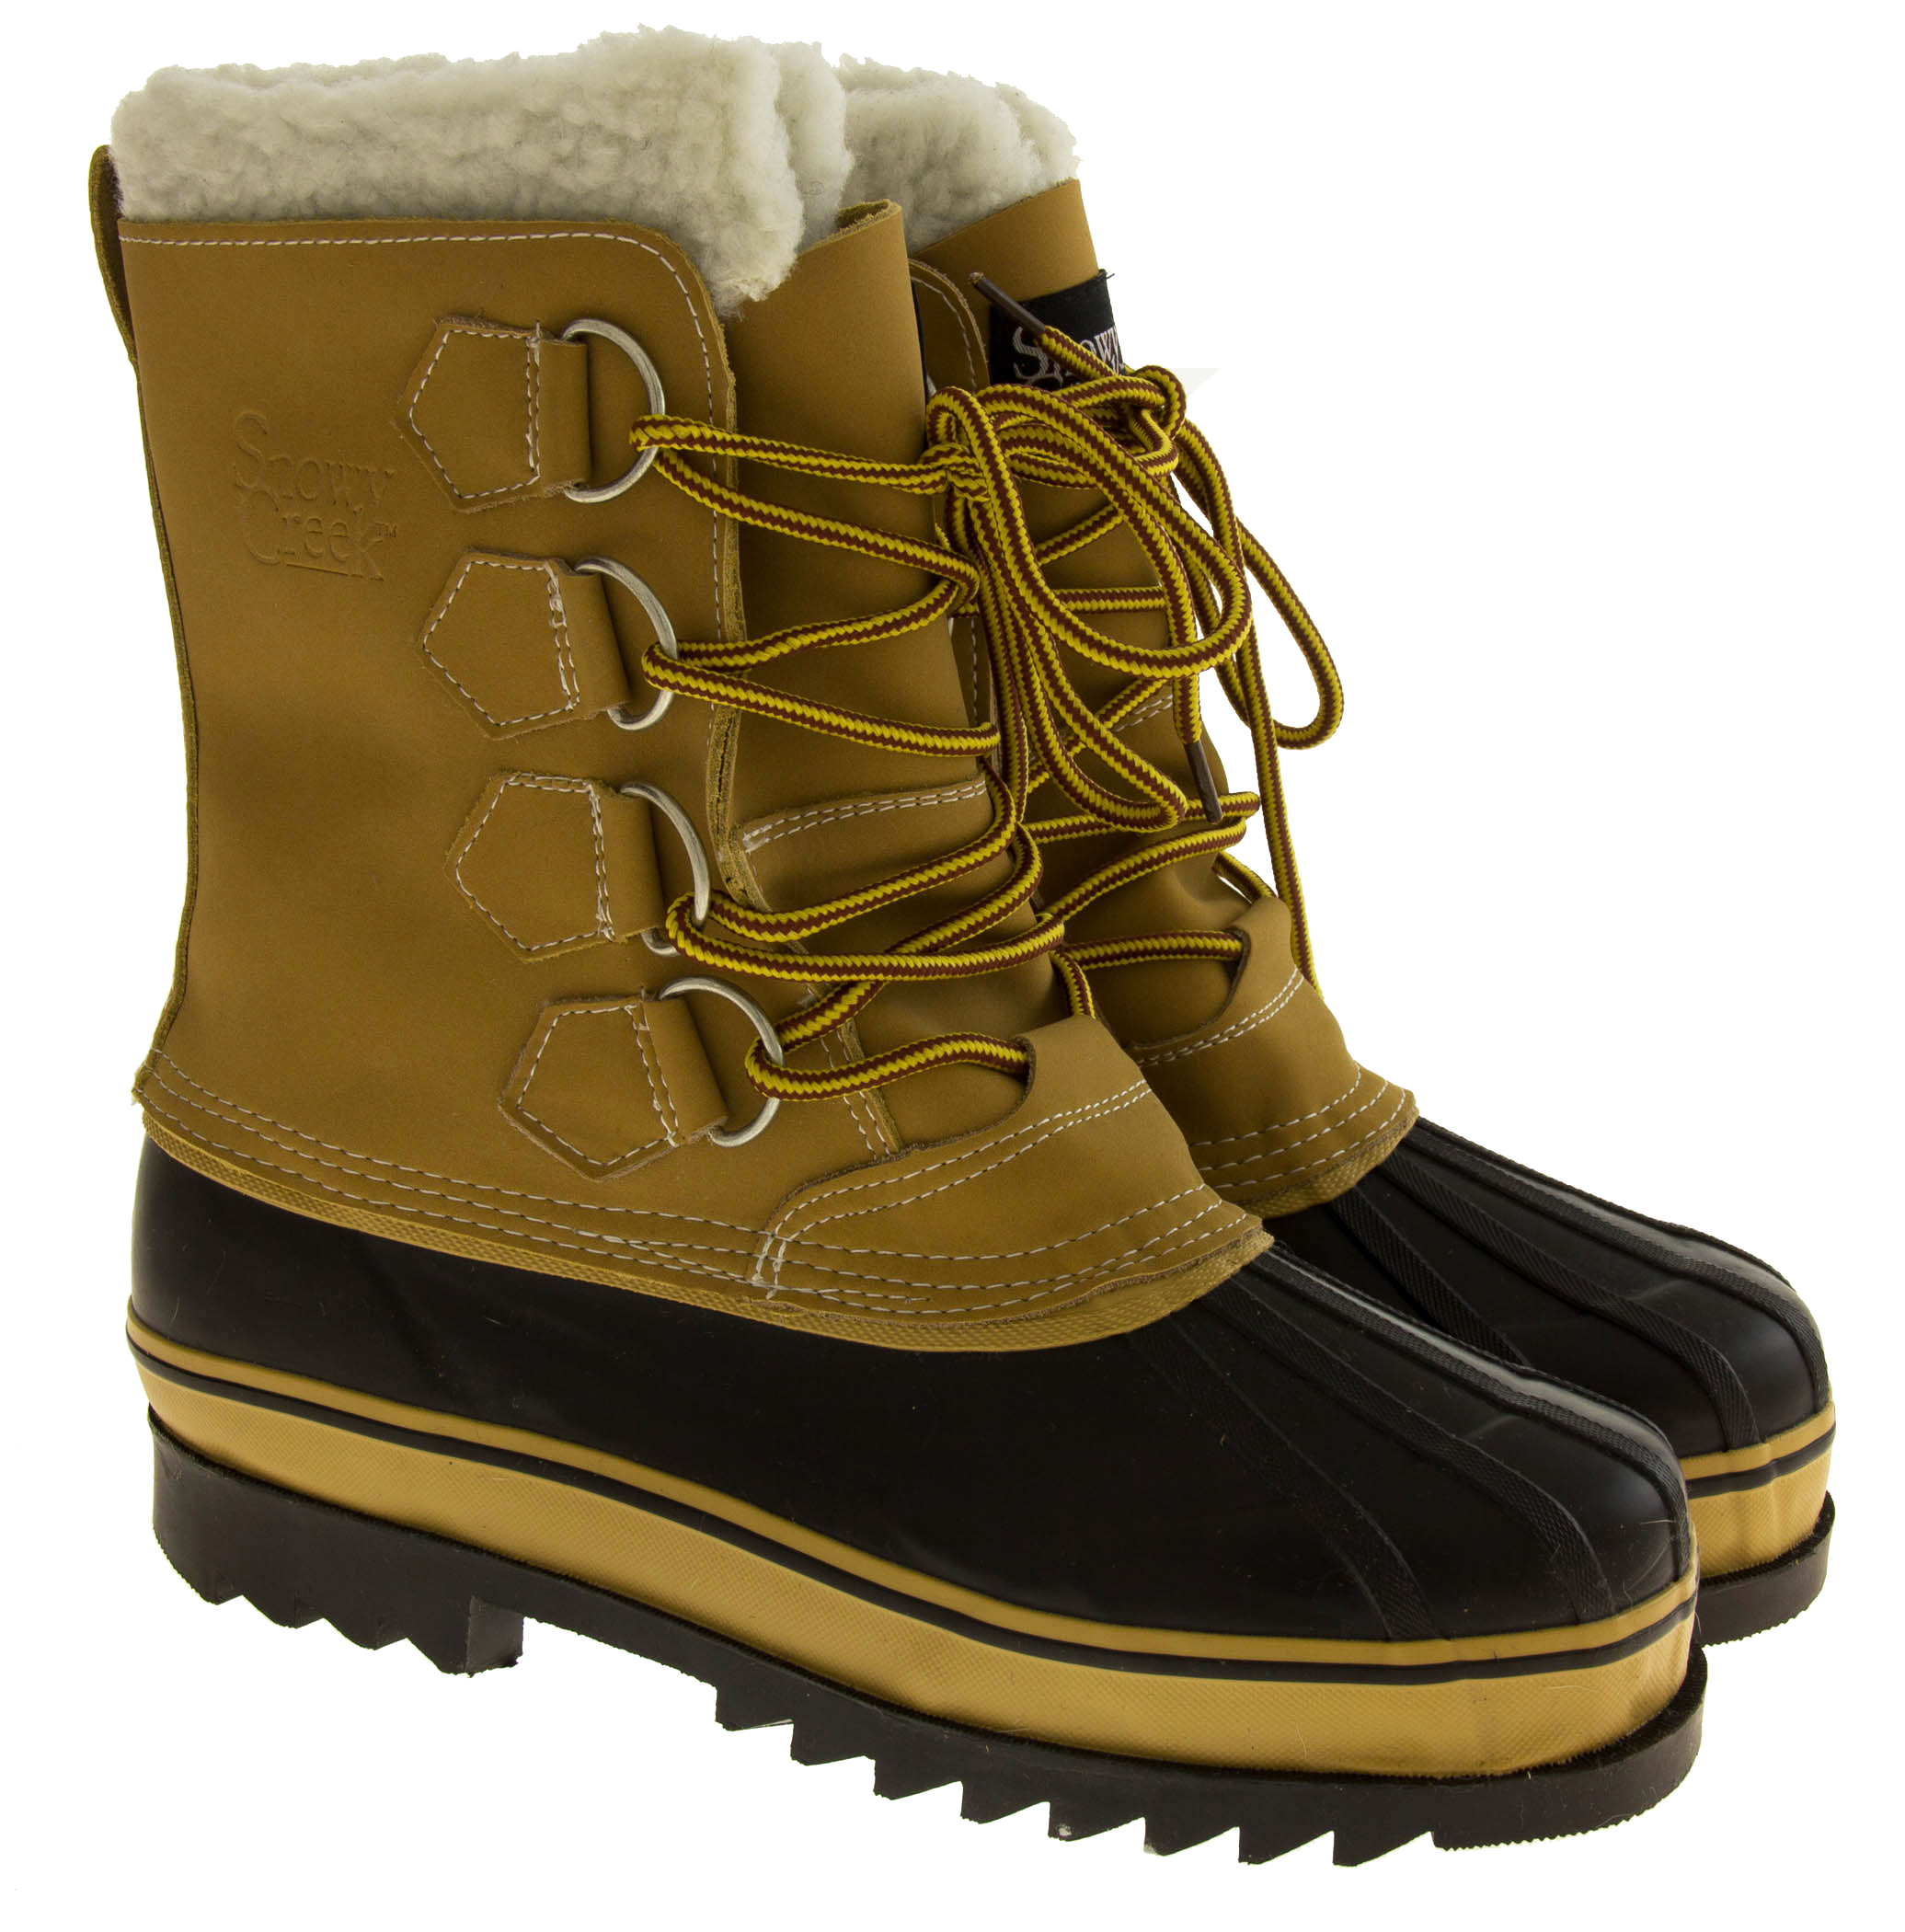 Warm Winter Boots For Men 52D27k9u